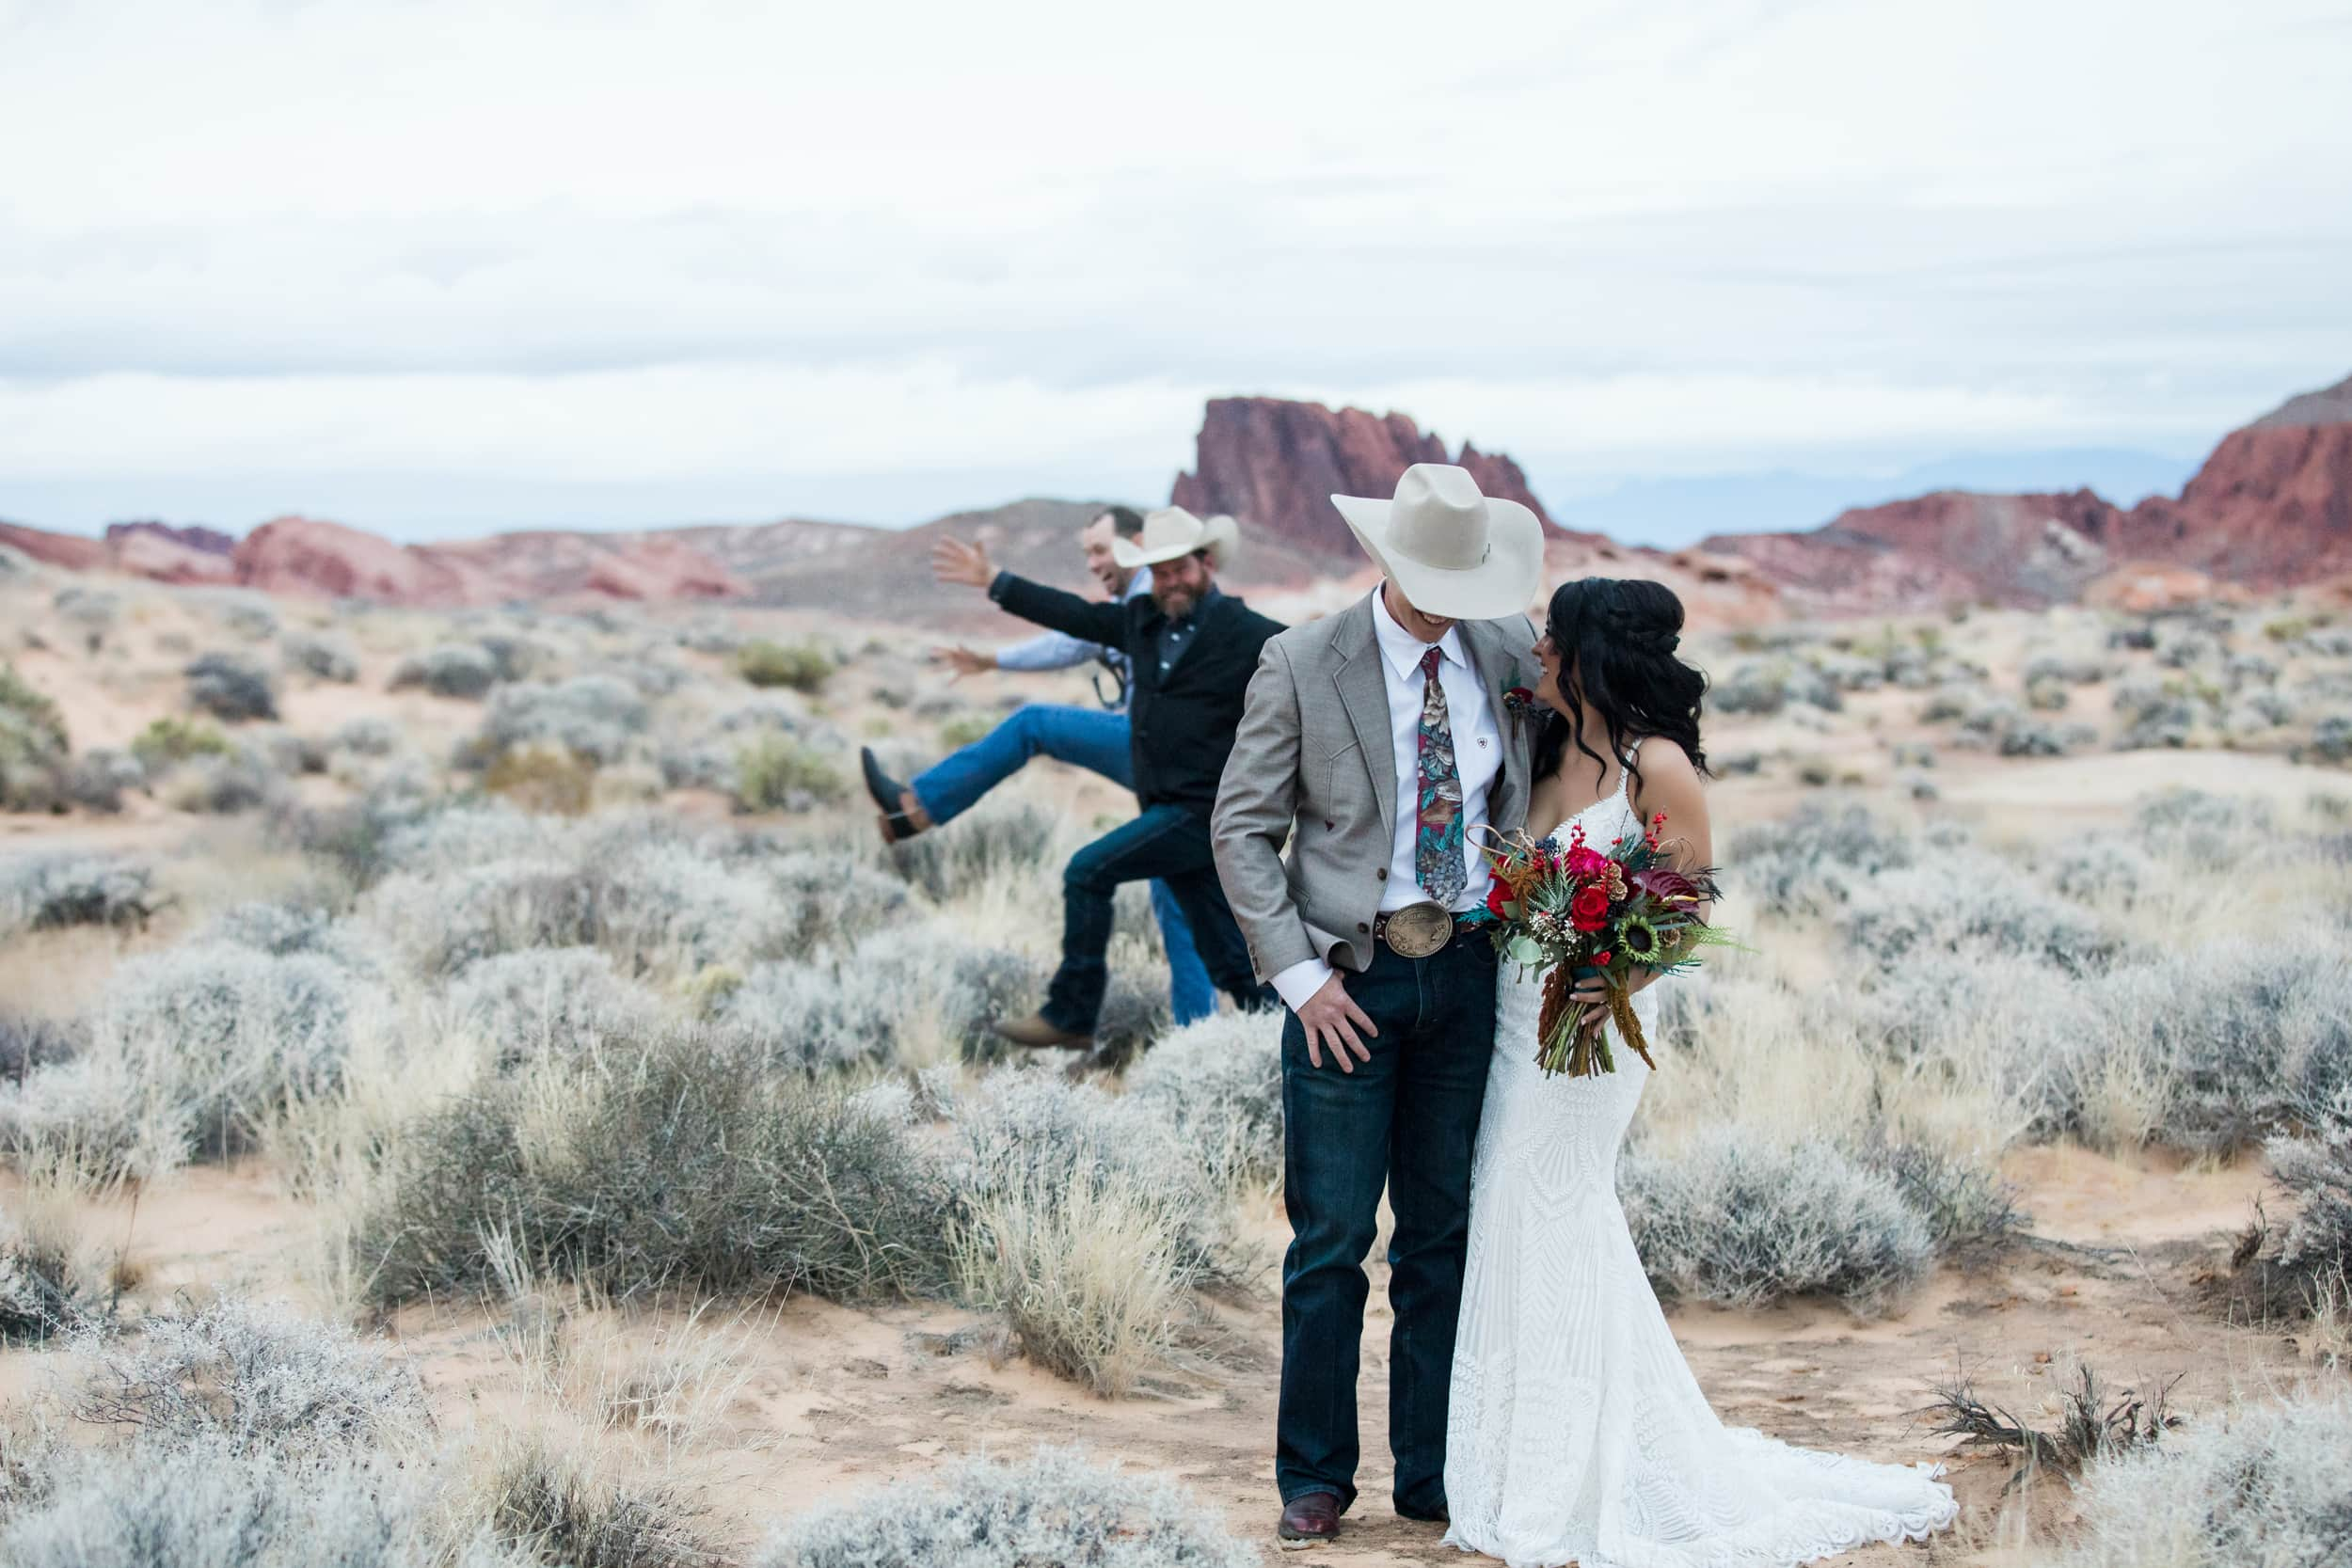 Western wedding party having fun with photo opp.